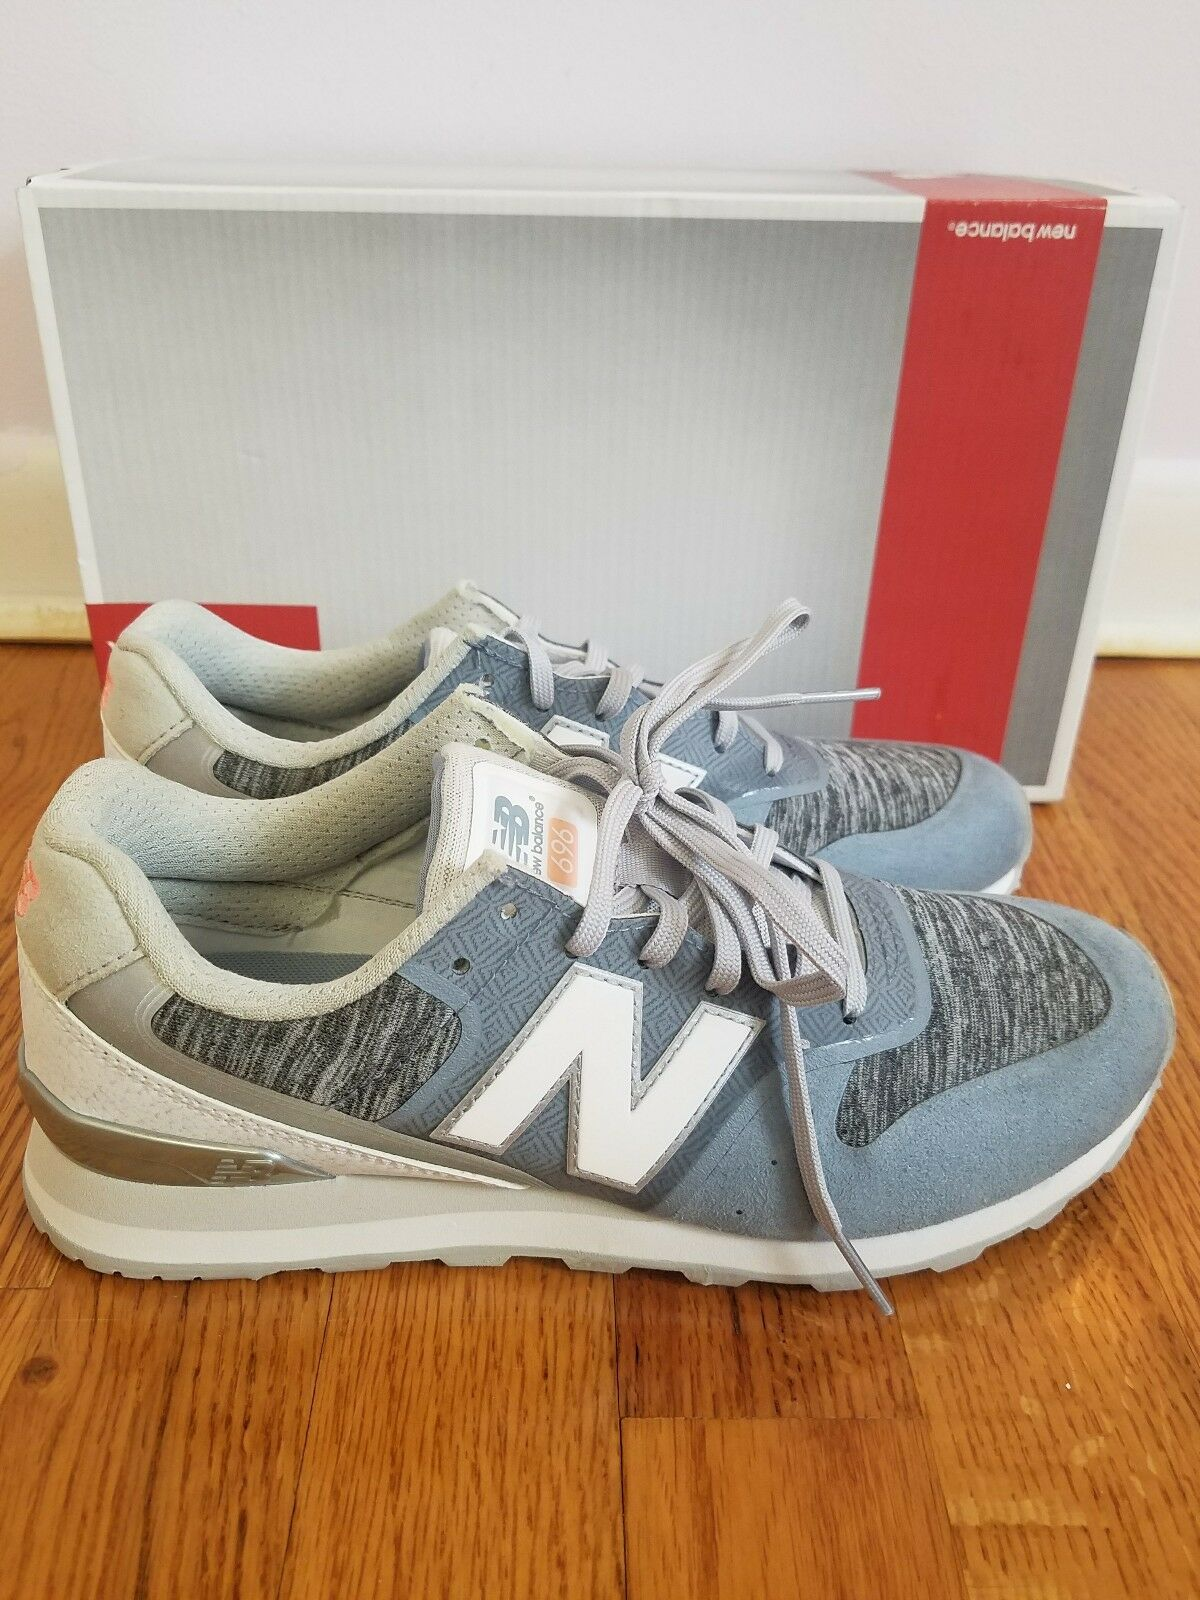 new balance 696 re-engineered women's sneakers  blue size 6 new in a box